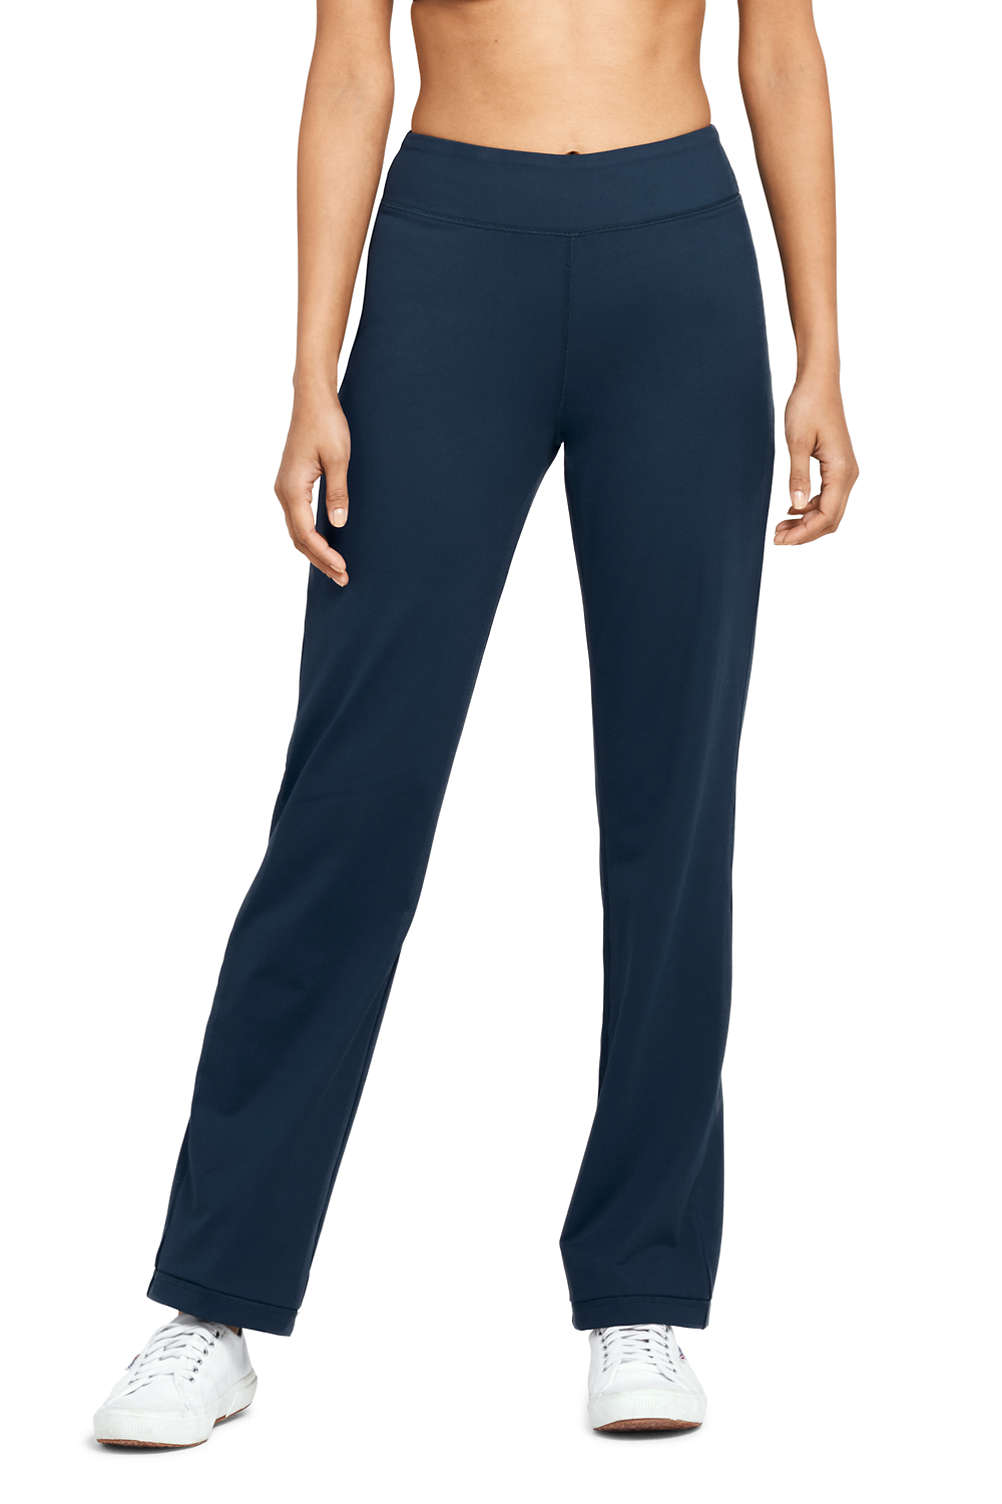 4af2e07c4cfb6 Women's Performance Active Pants from Lands' End